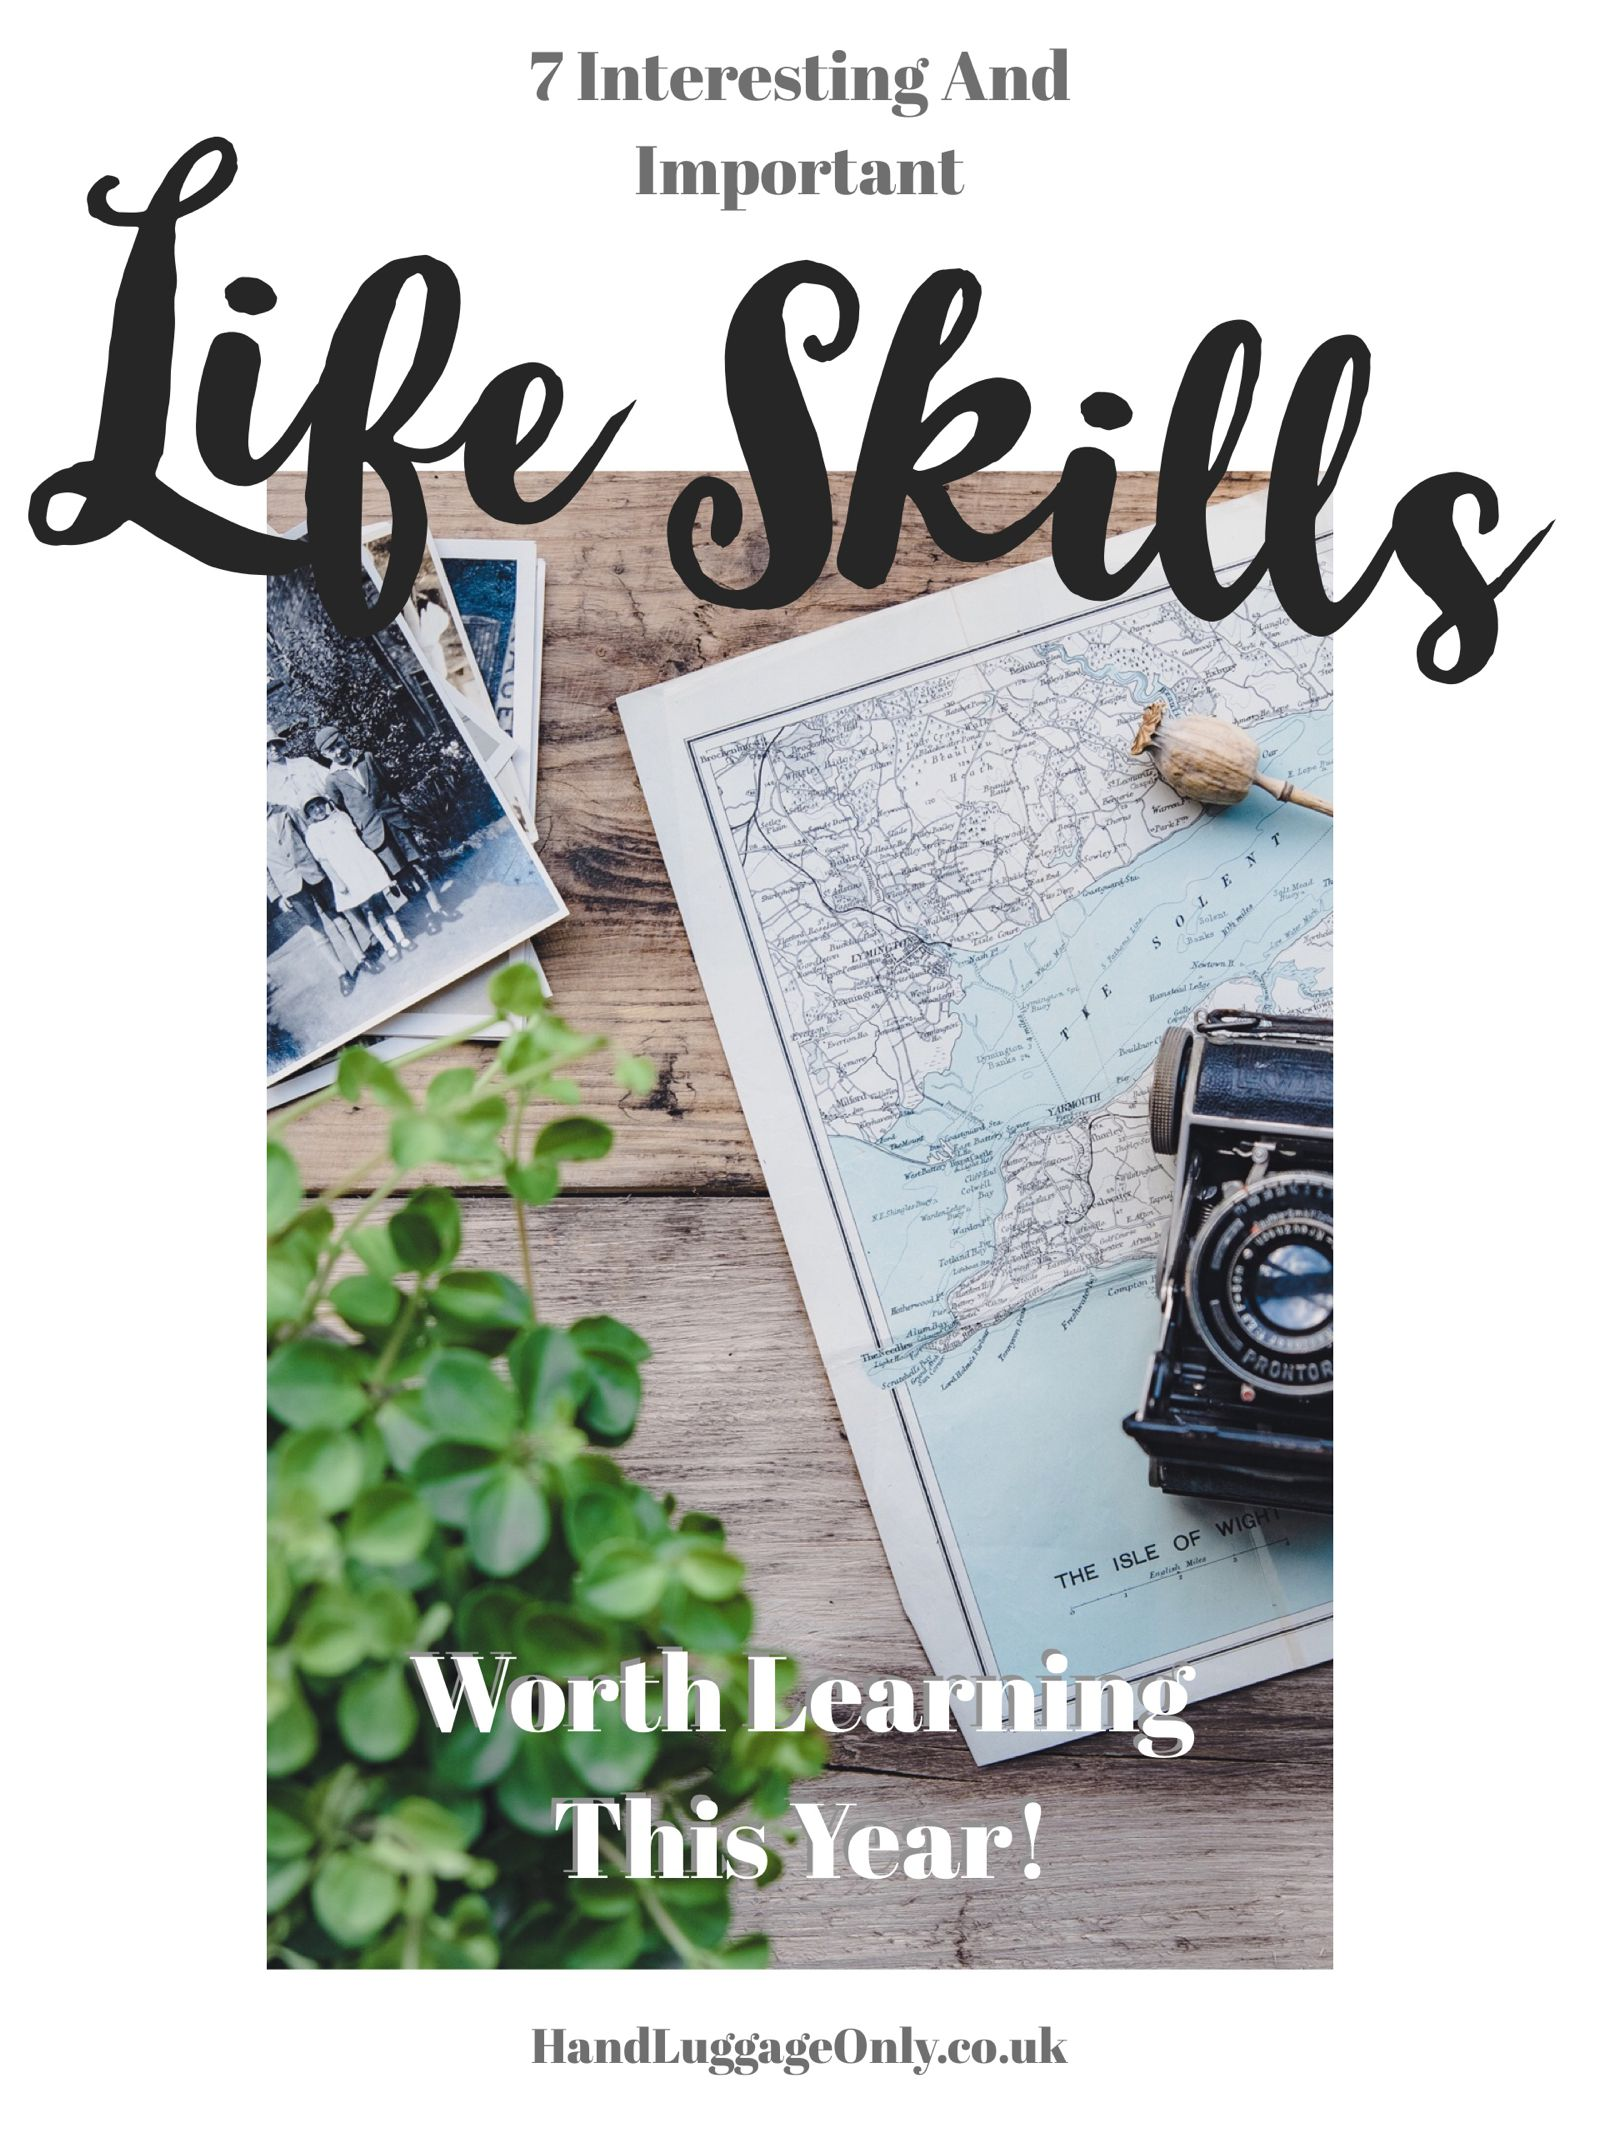 7 Interesting And Important Life Skills Worth Learning This Year!